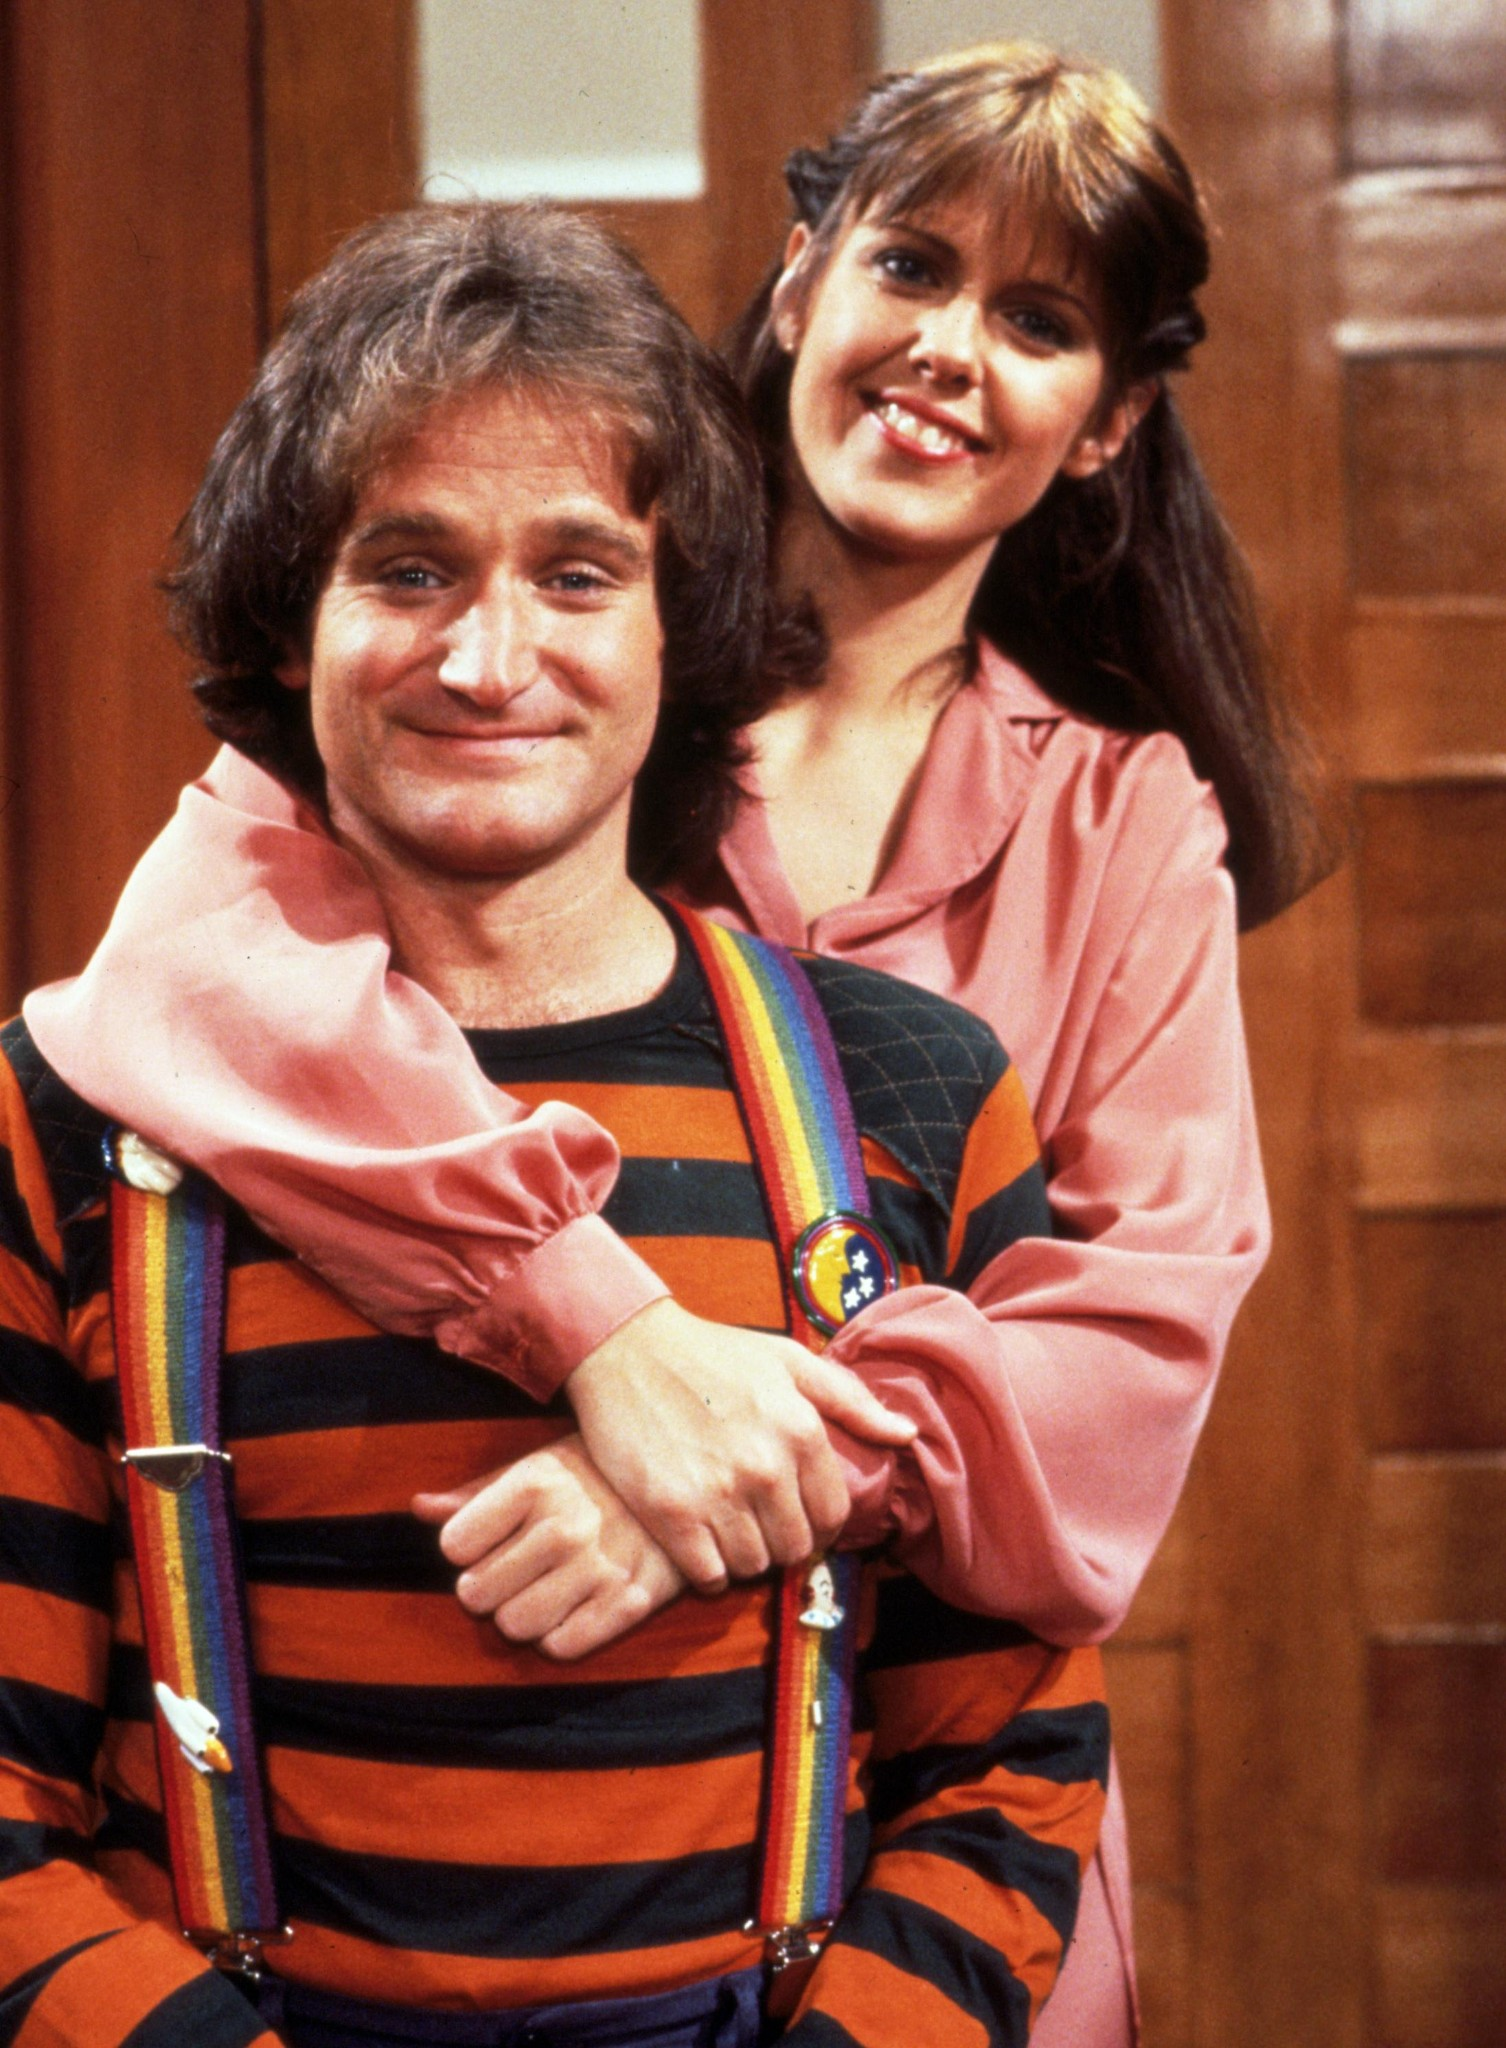 Robin Williams groped and flashed me on set, says Mork & Mindy co-star